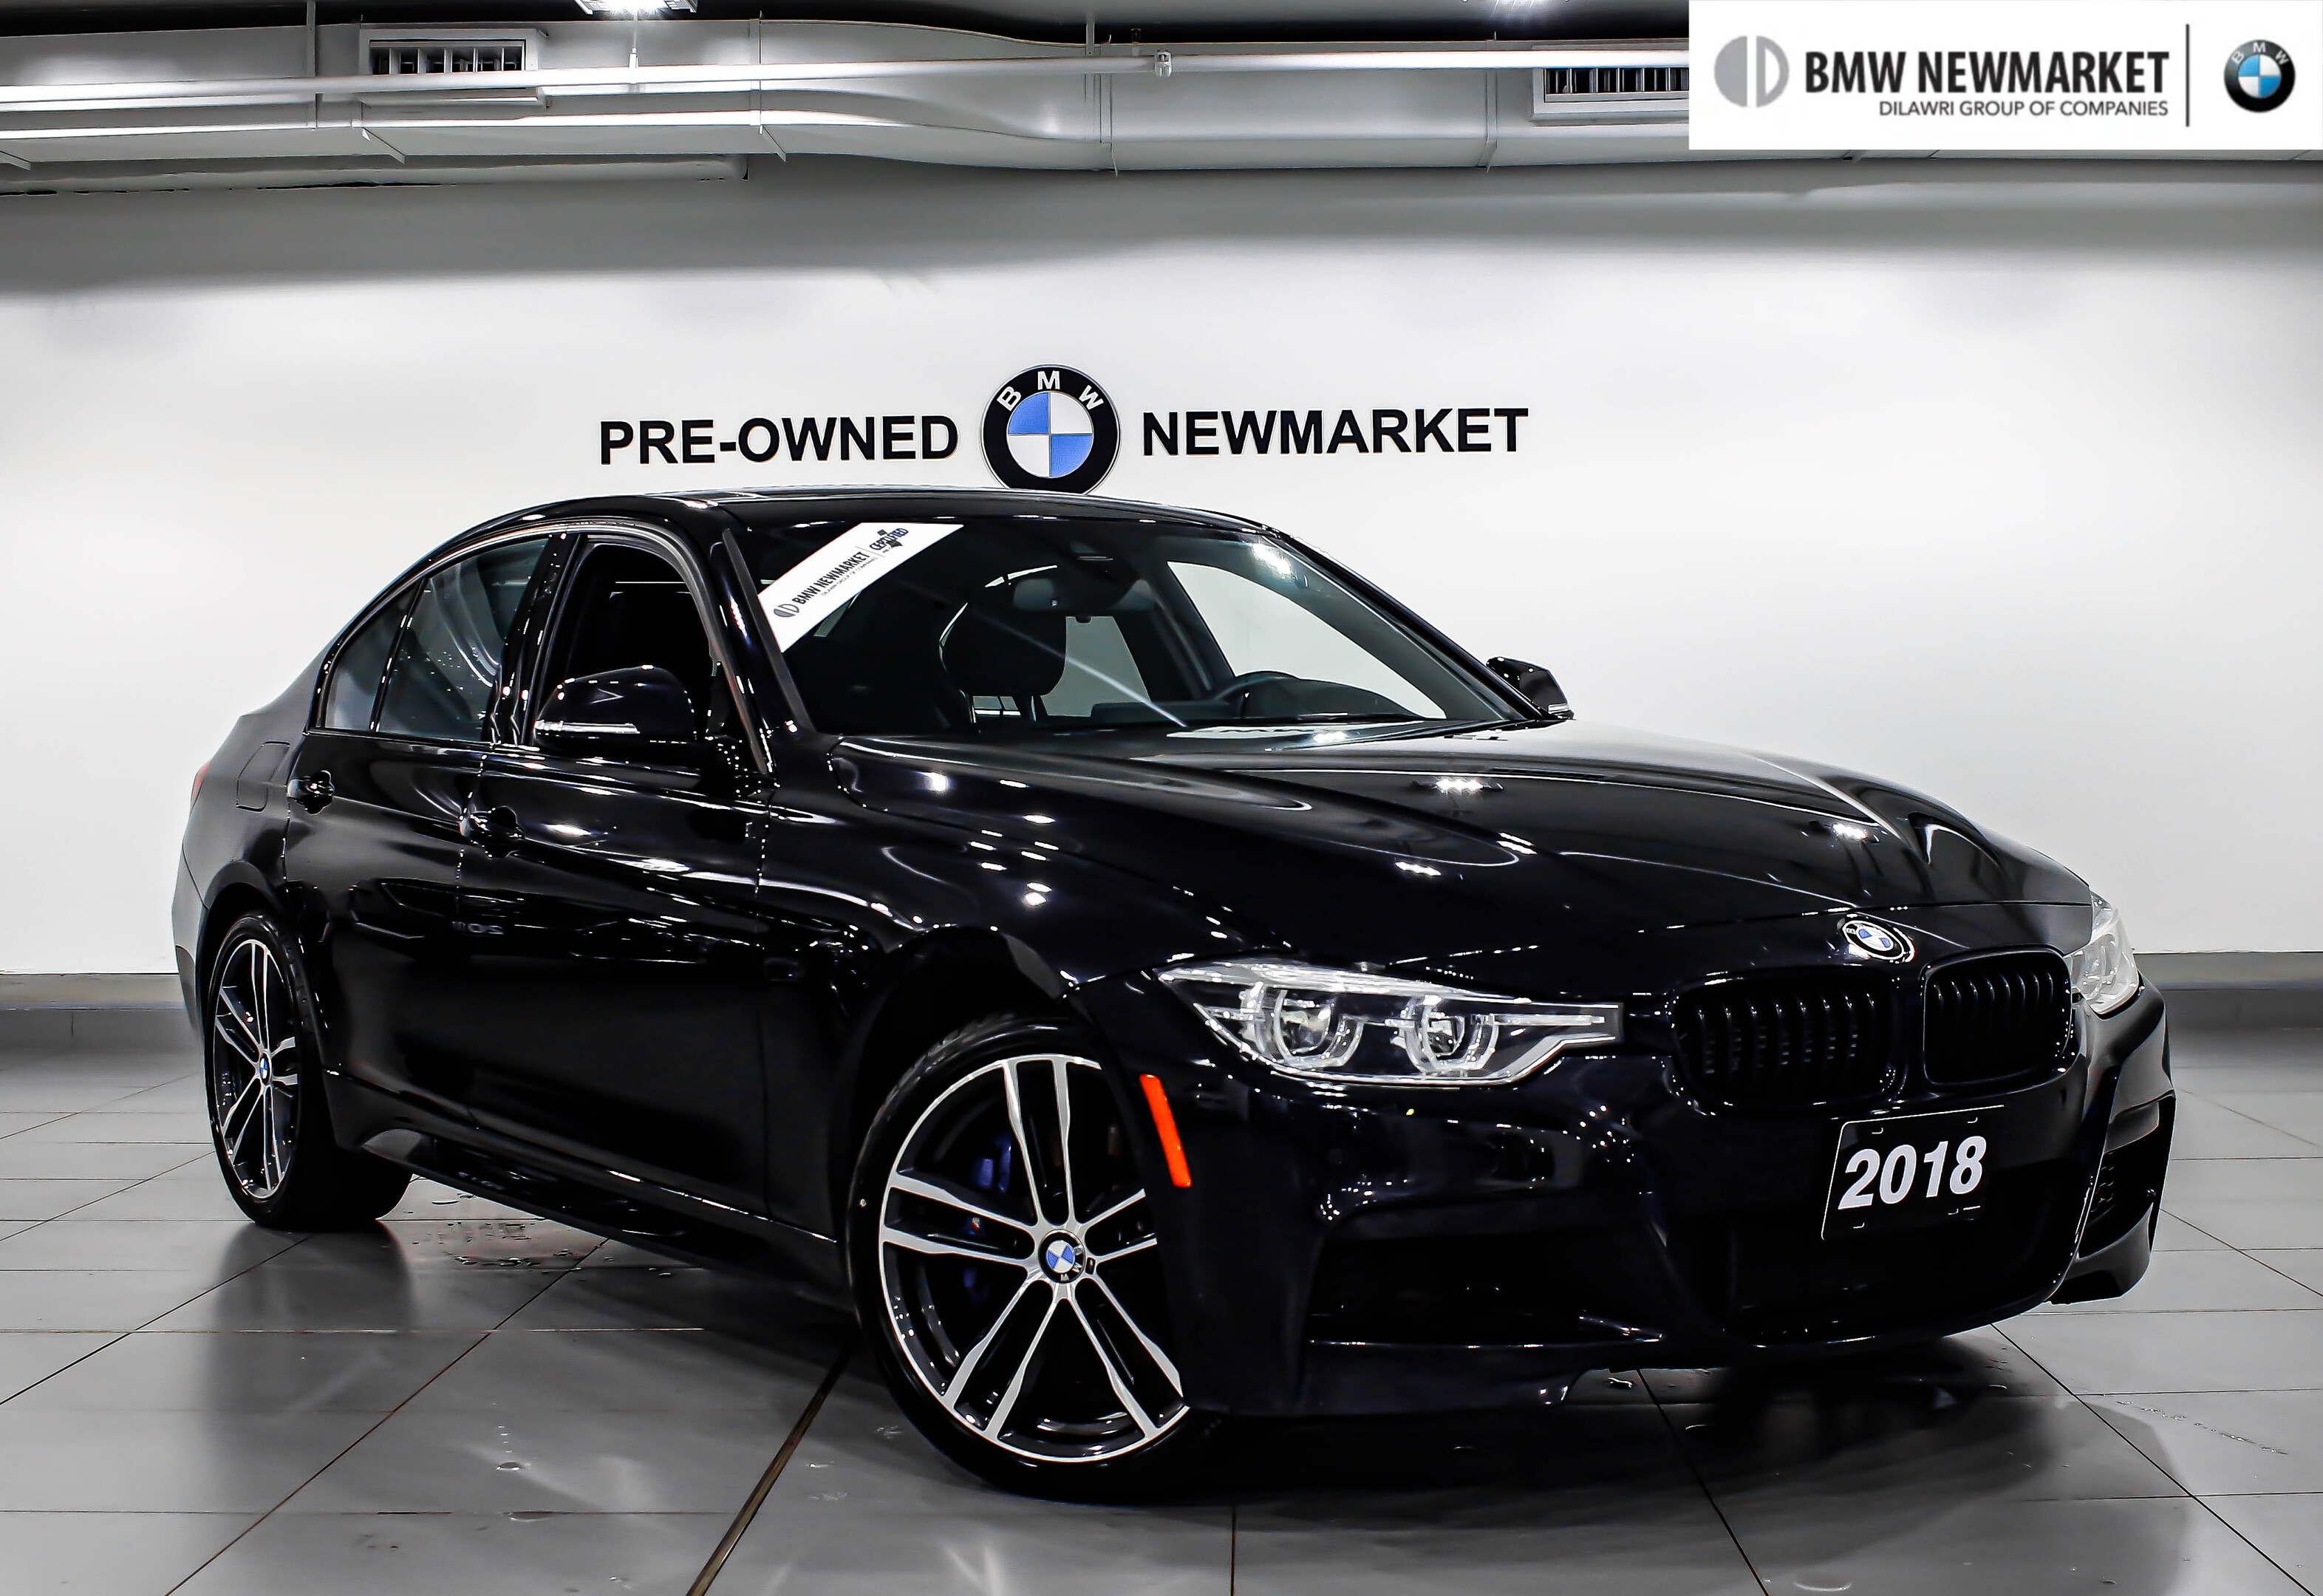 2012-2018 BMW 3 Series (F30) Used Vehicle Review